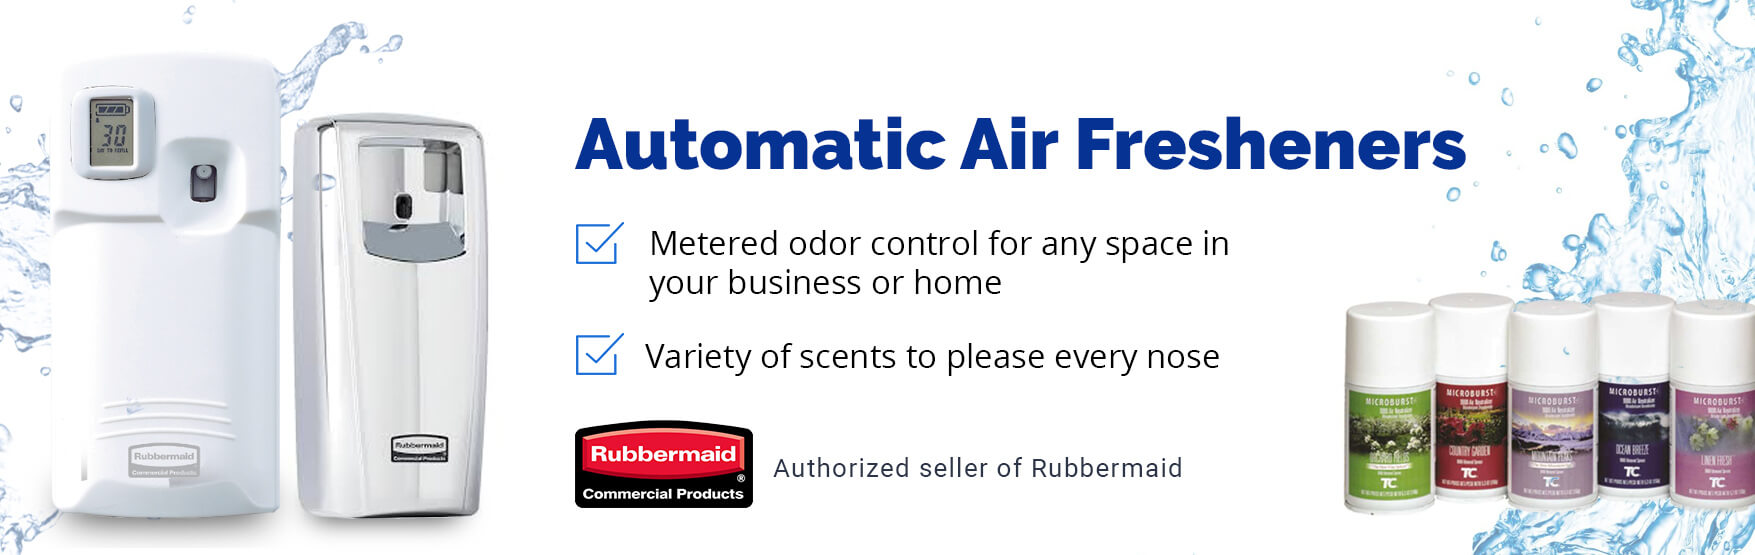 Commercial plumbing touchfree bathroom supply store for Commercial bathroom air freshener